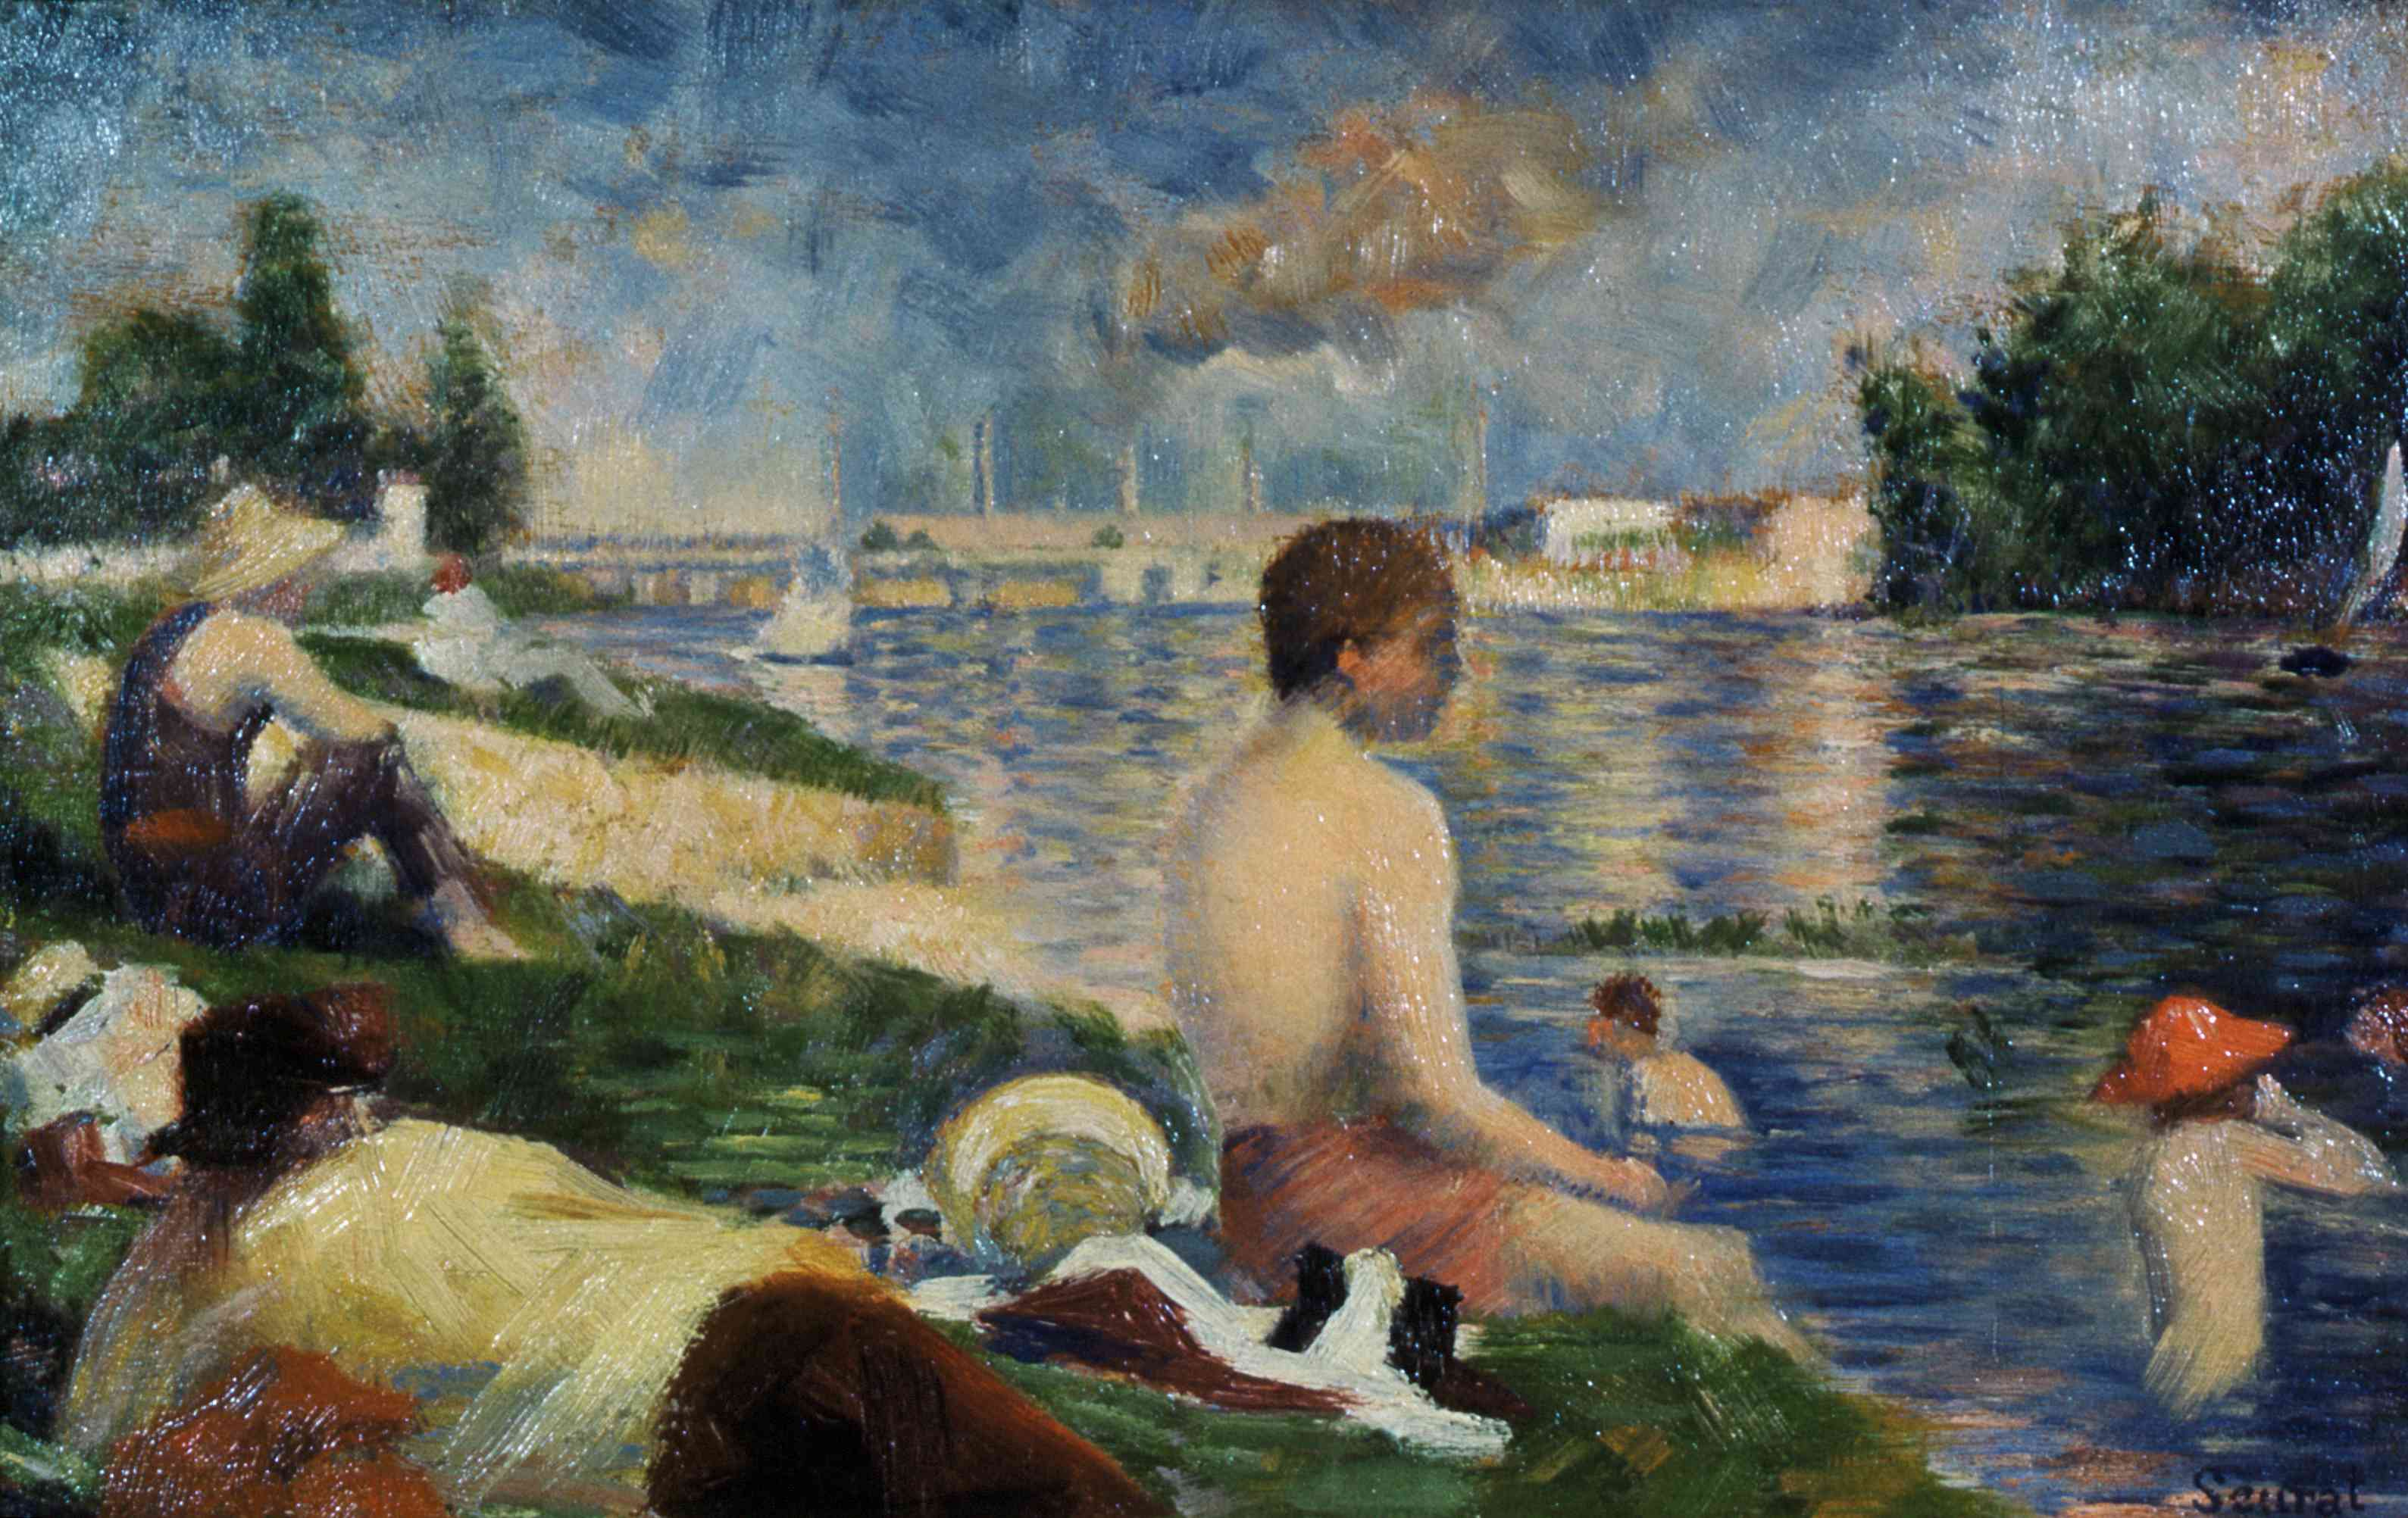 Final Study for Bathers at Asnieres by Georges Seurat